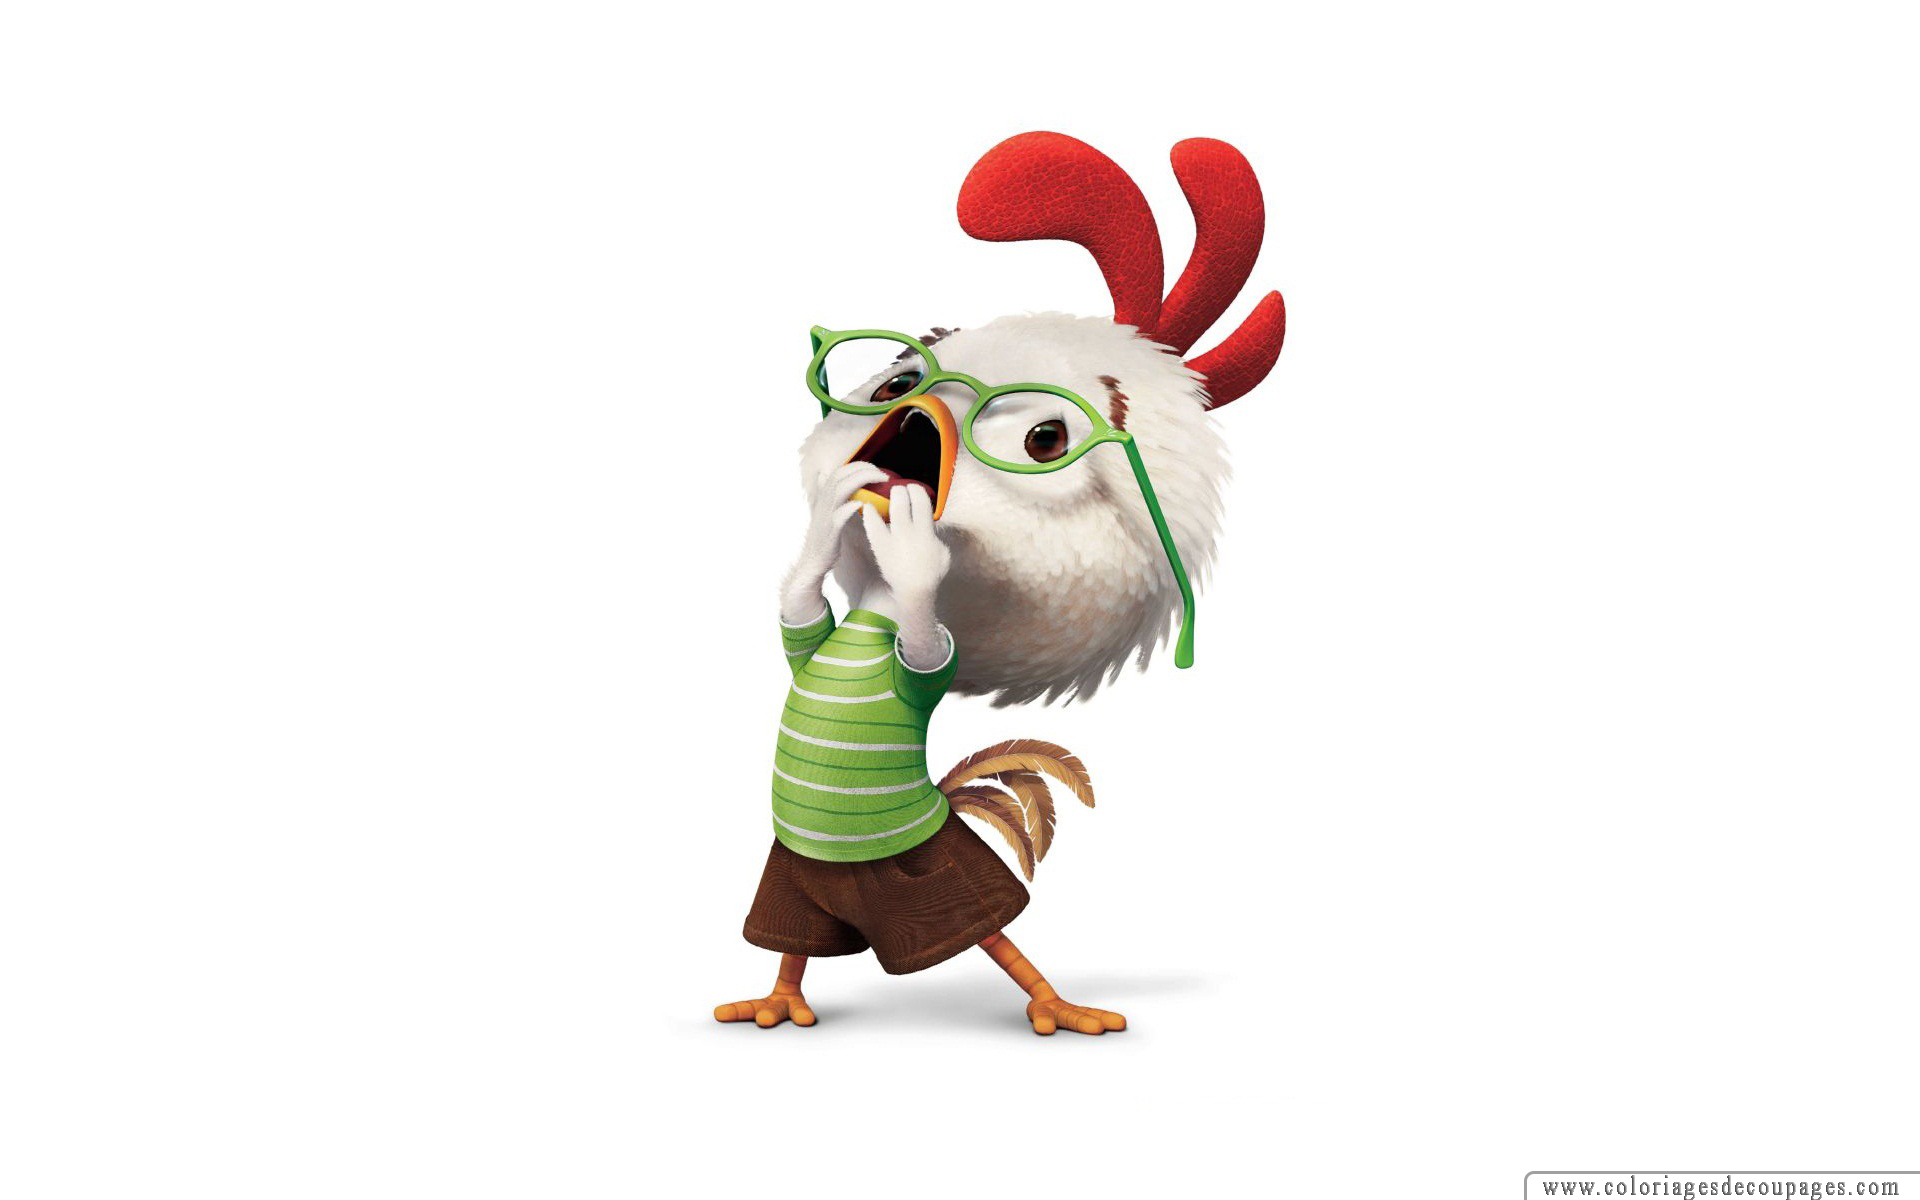 Chicken Little Funny Fond Ecran Fonds dcran HD Fonds dcran d 1920x1200